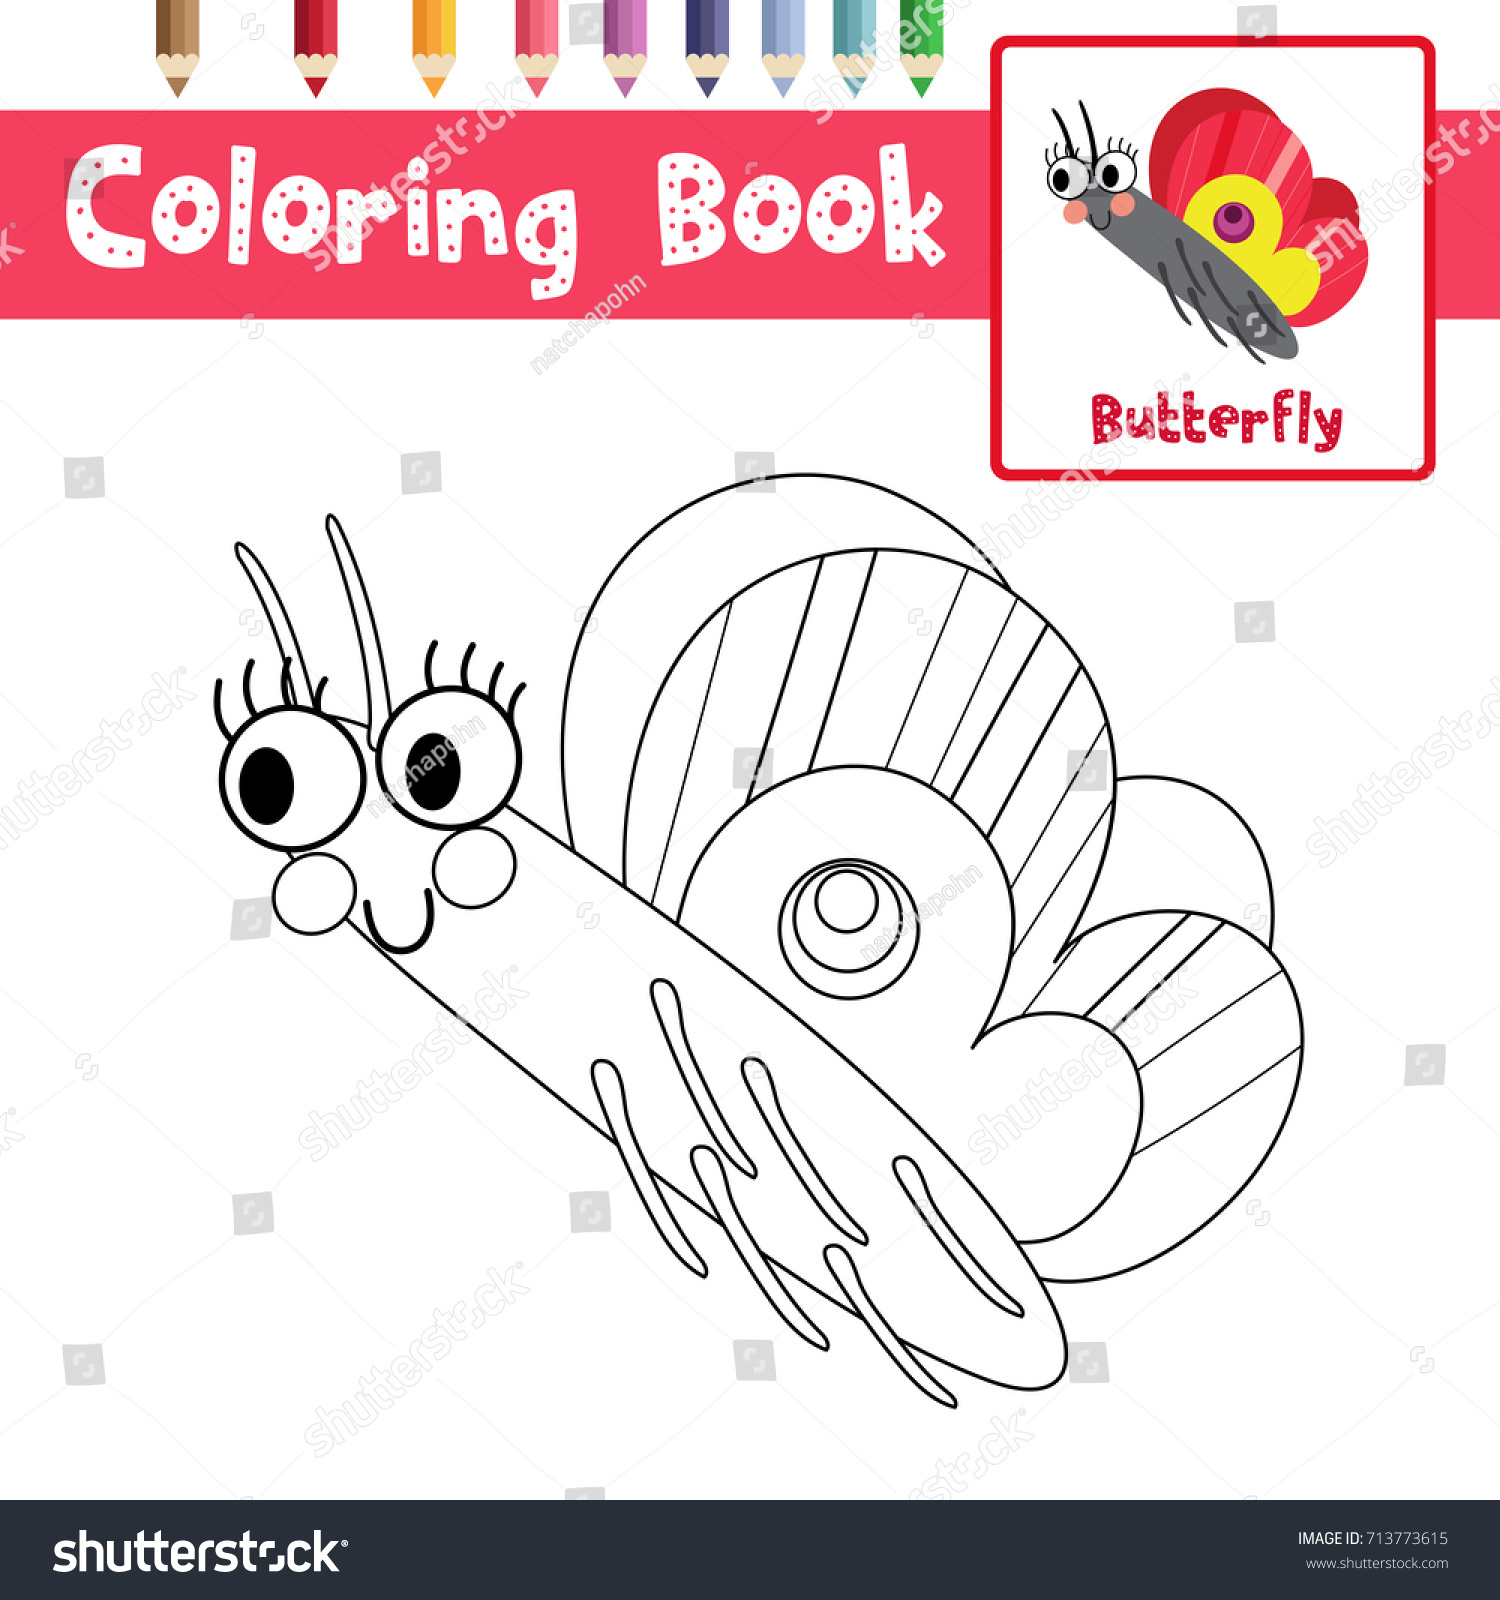 coloring page butterfly side view animals stock vector 713773615